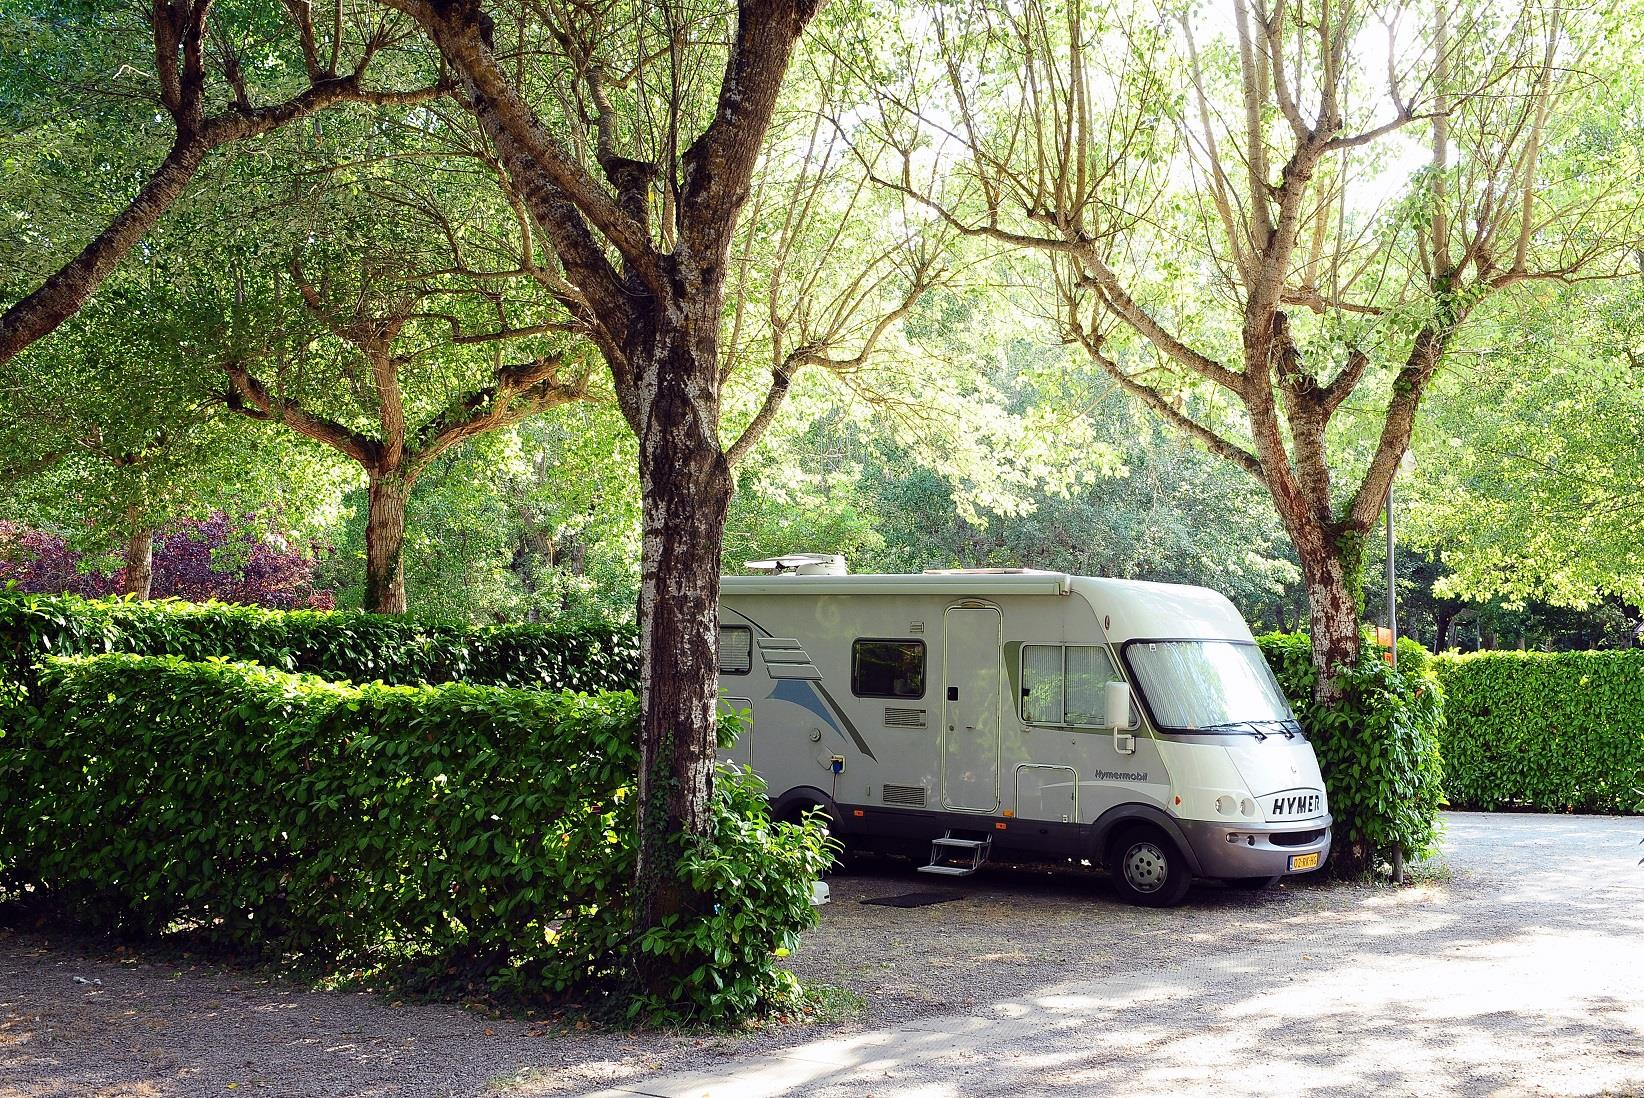 Pitch camping car for Camping delle piscine sarteano siena